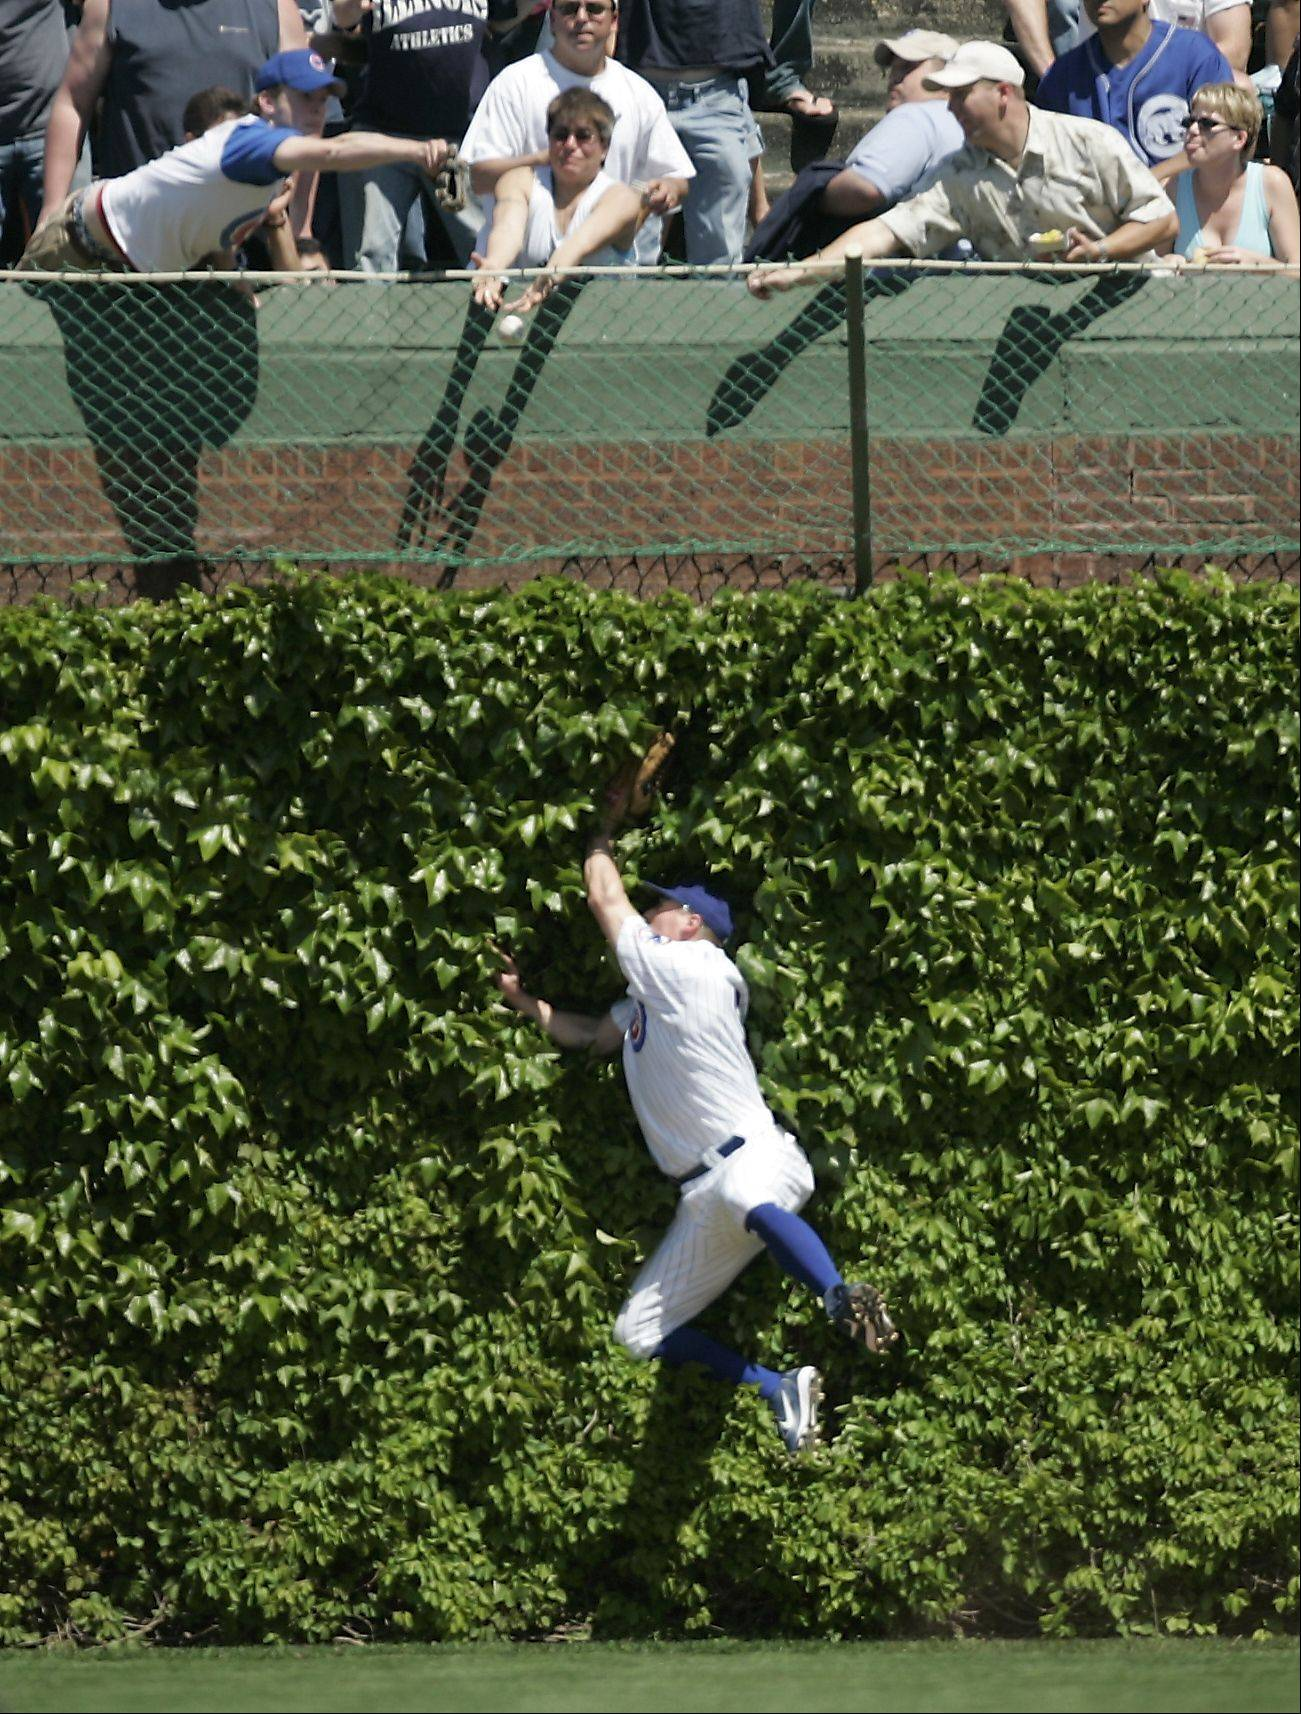 Cubs right fielder Jeromy Burnitz hits the wall as he makes an effort to catch the Sox Tadahito Iguchi HR during the final game of the Cubs vs White Sox series at Wrigley Field.